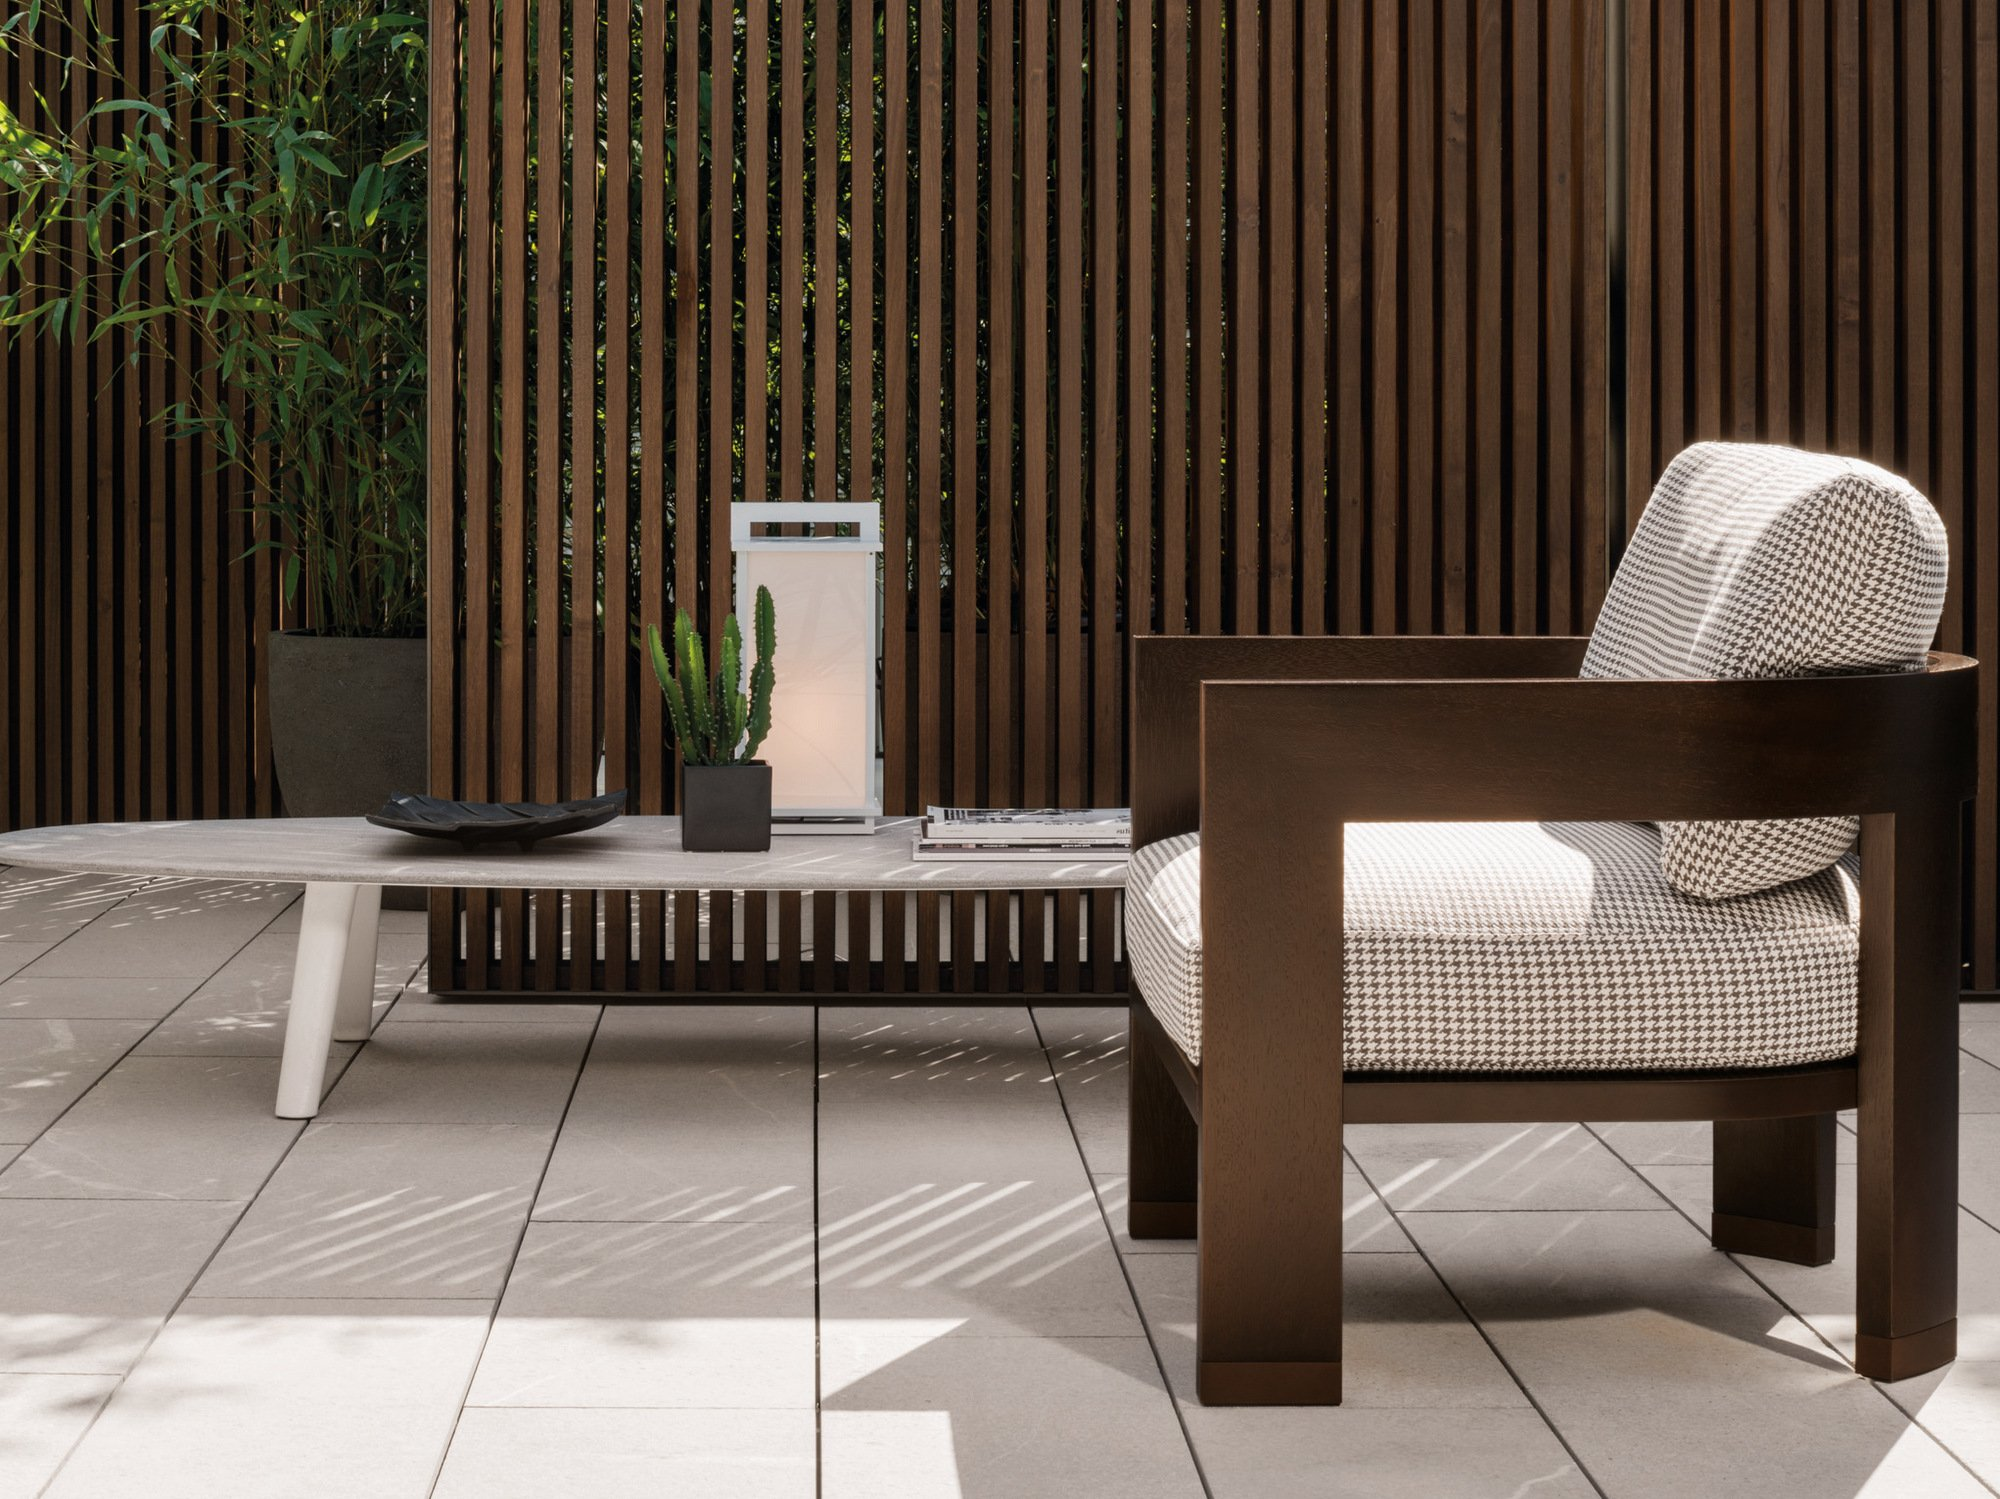 Outdoor armchair WARHOL DARK BROWN OUTDOOR by Minotti design ...